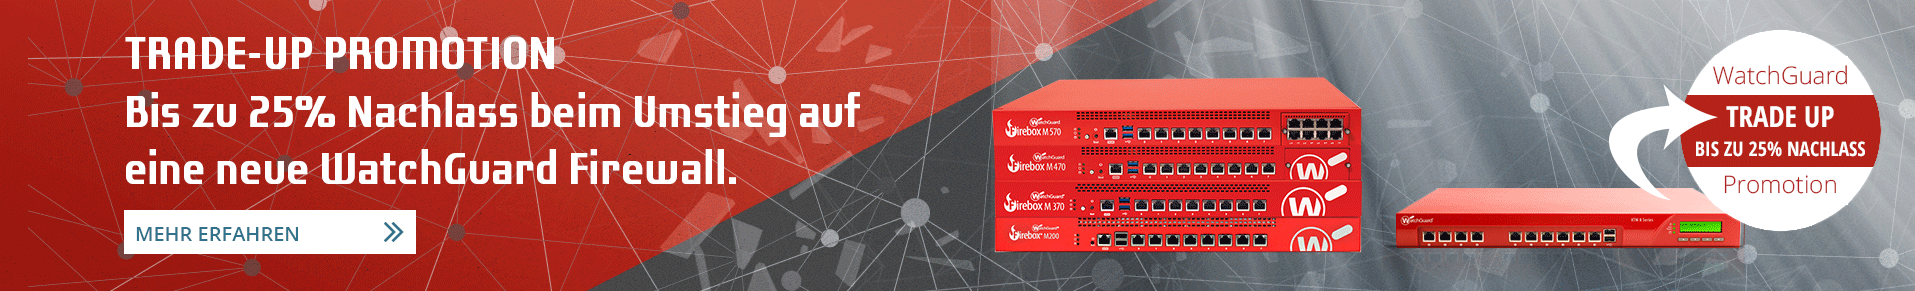 Mit WatchGuard Trade-Up Promotion bis zu 25% sparen